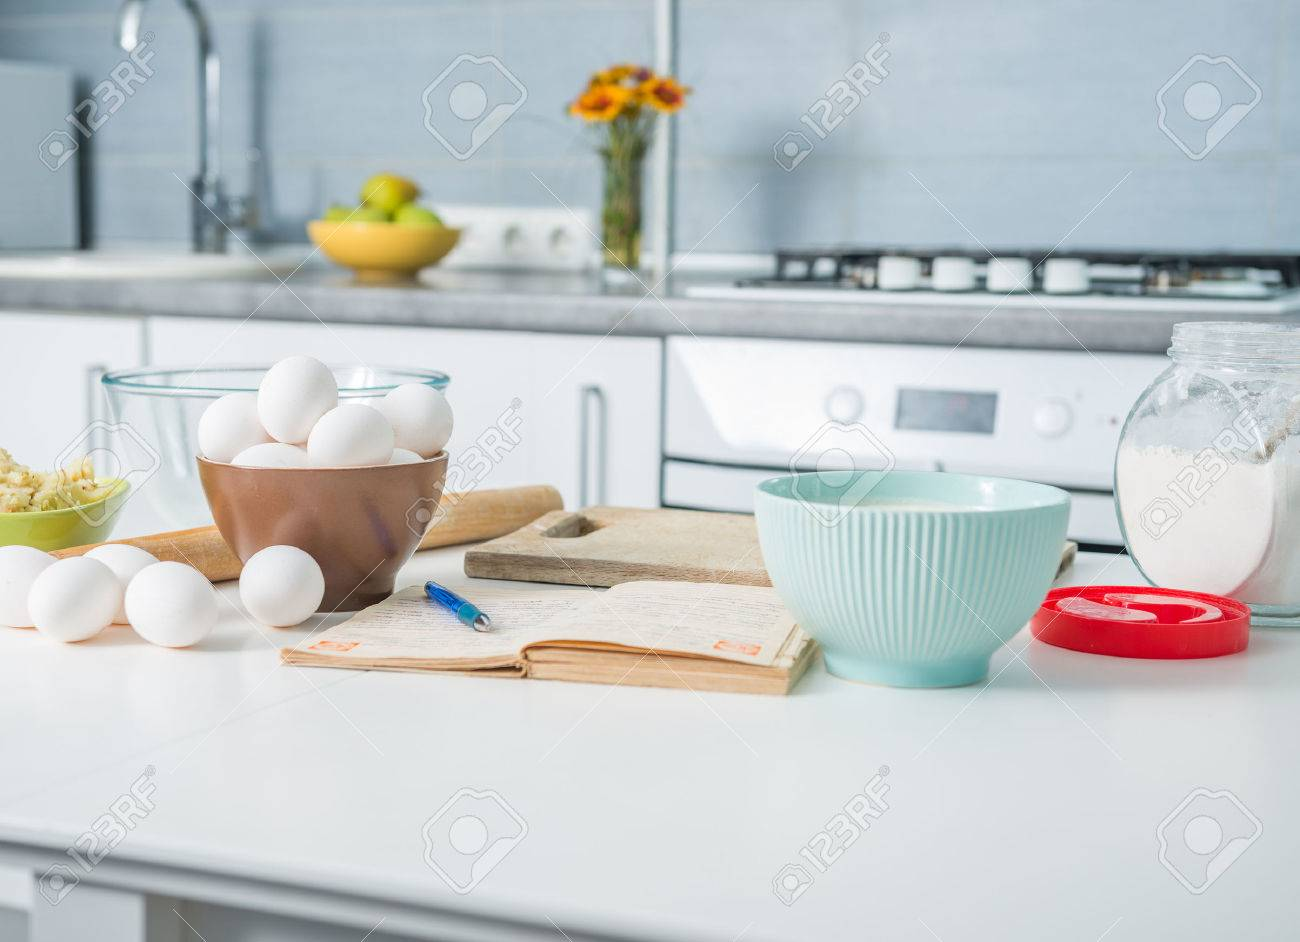 Ingredients For Baking And Recioe Book On A Kitchen Table Stock Photo    43785616